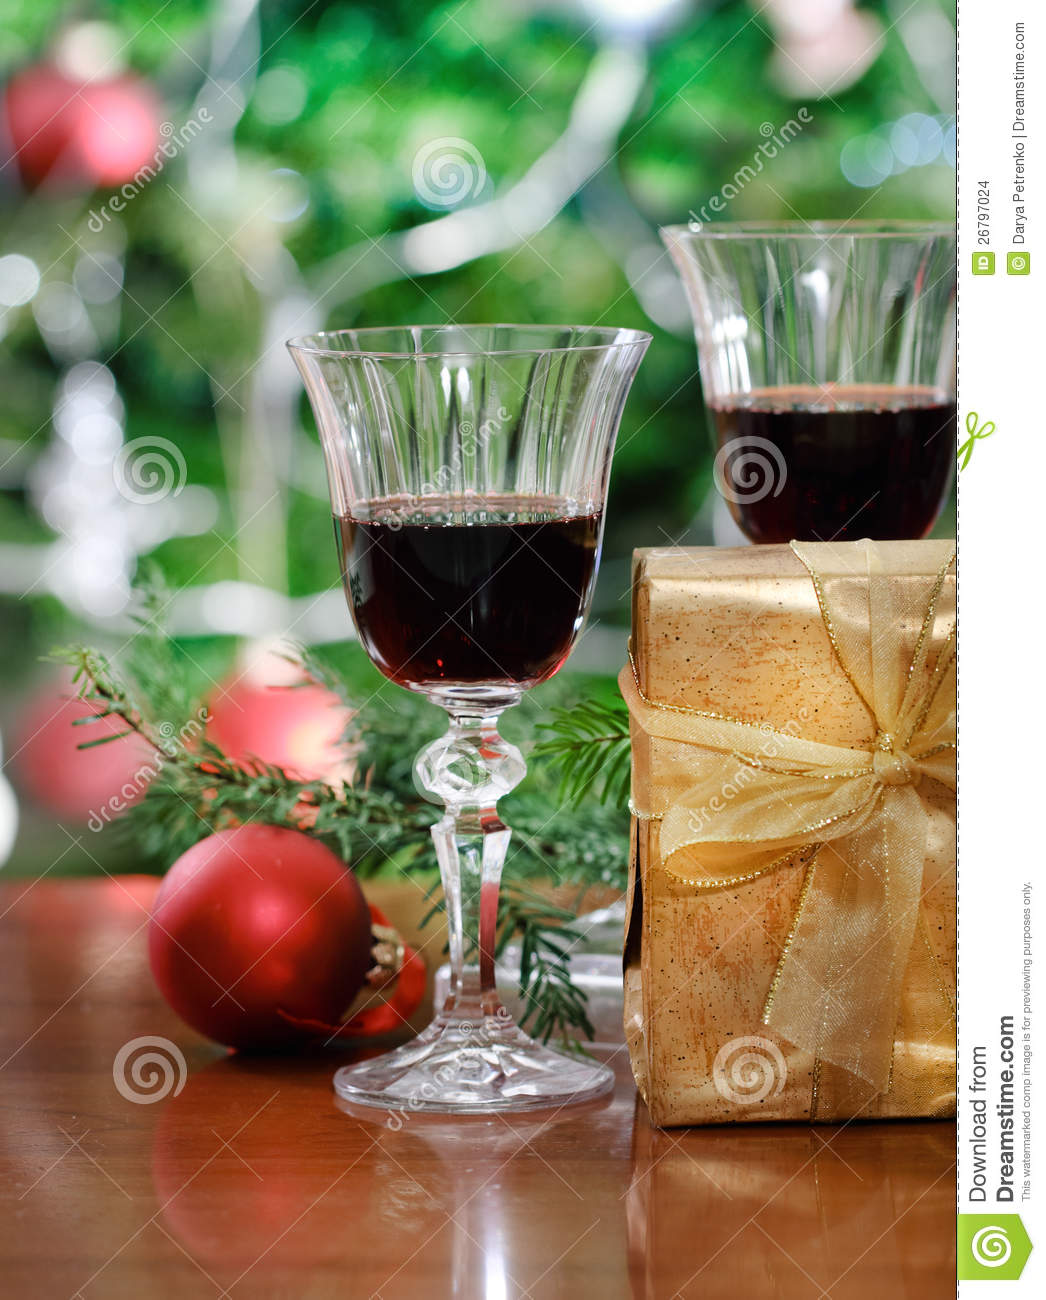 Christmas Decorations With Wine Glasses: Glasses Of Red Wine And Christmas Decorations Stock Images